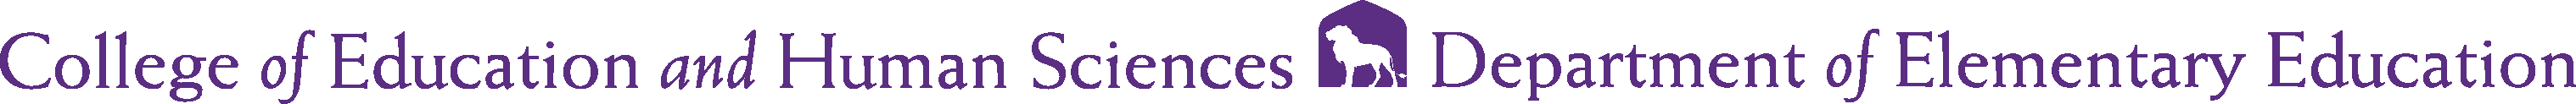 College of Business - Elementary Education Logo - Purple - Version 2